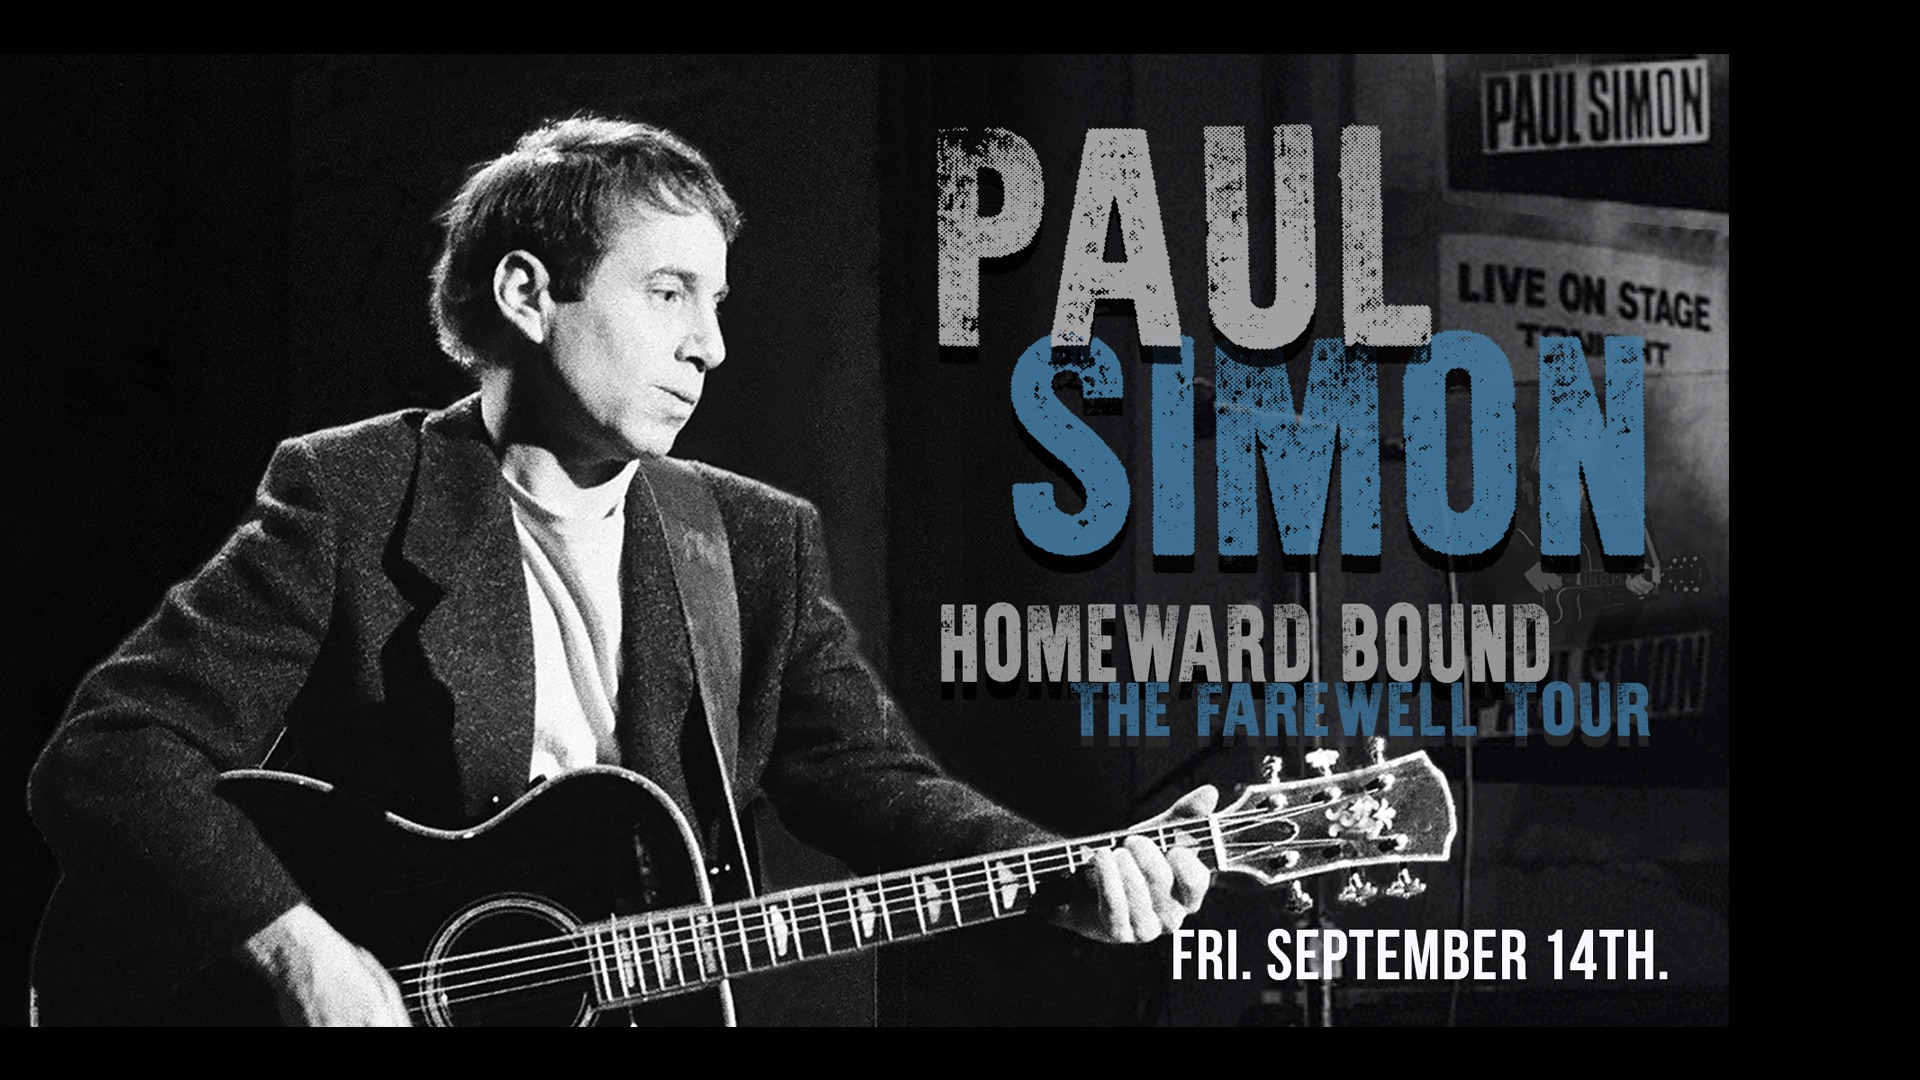 Paul Simon Homeward Bound - Farewell Tour